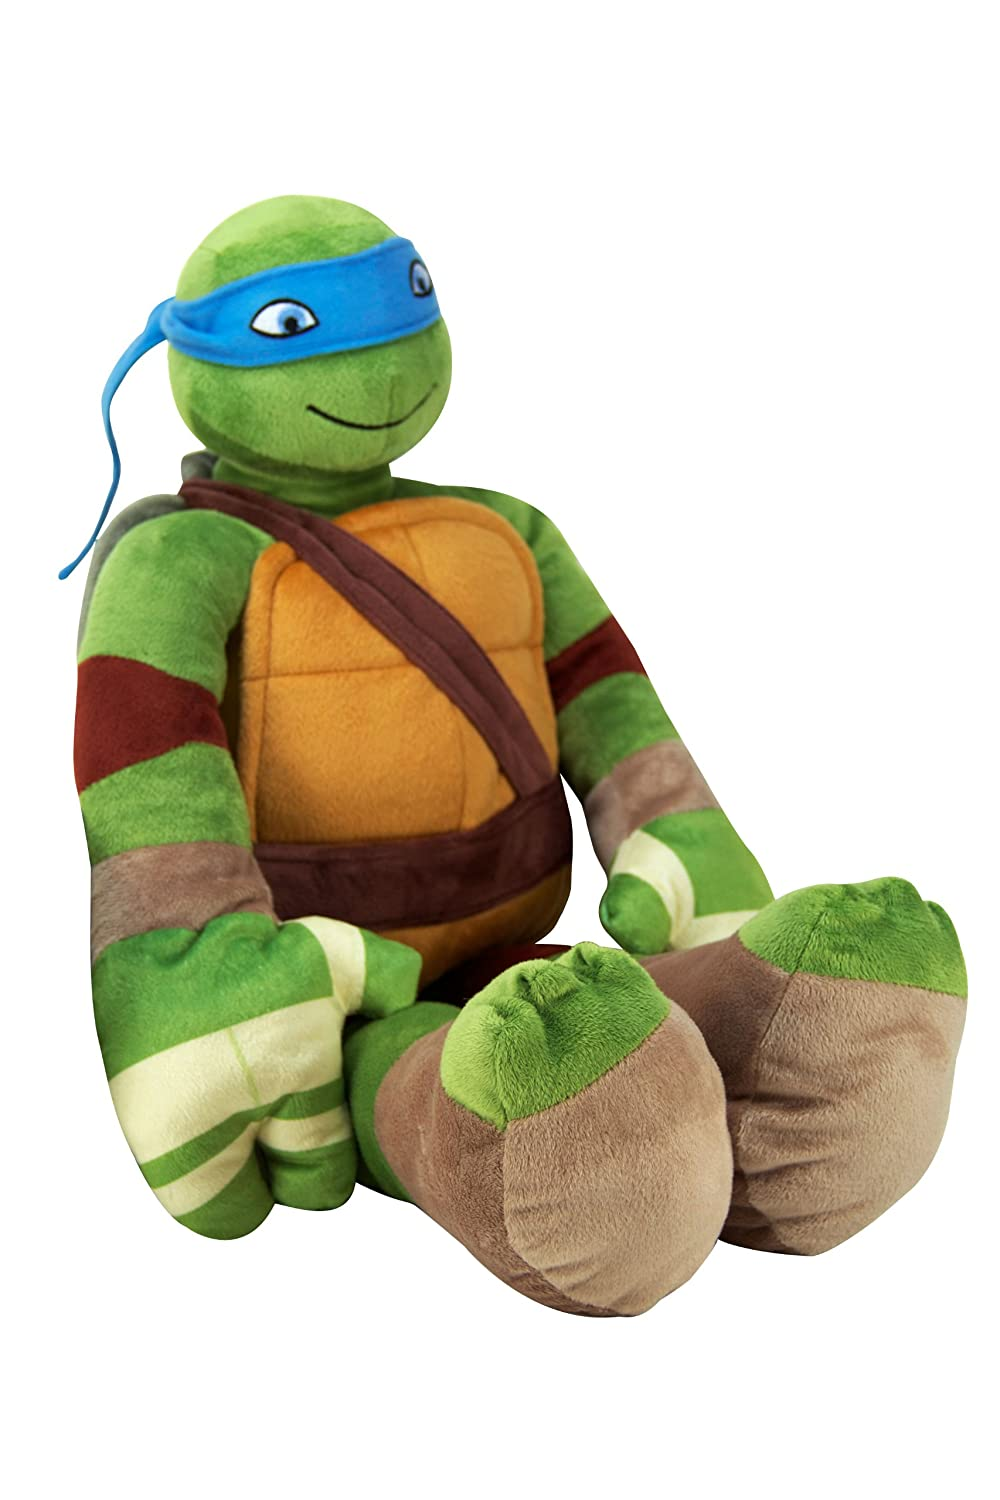 Teenage Mutant Ninja Turtles Pillowtime Pal Pillow, Leonardo